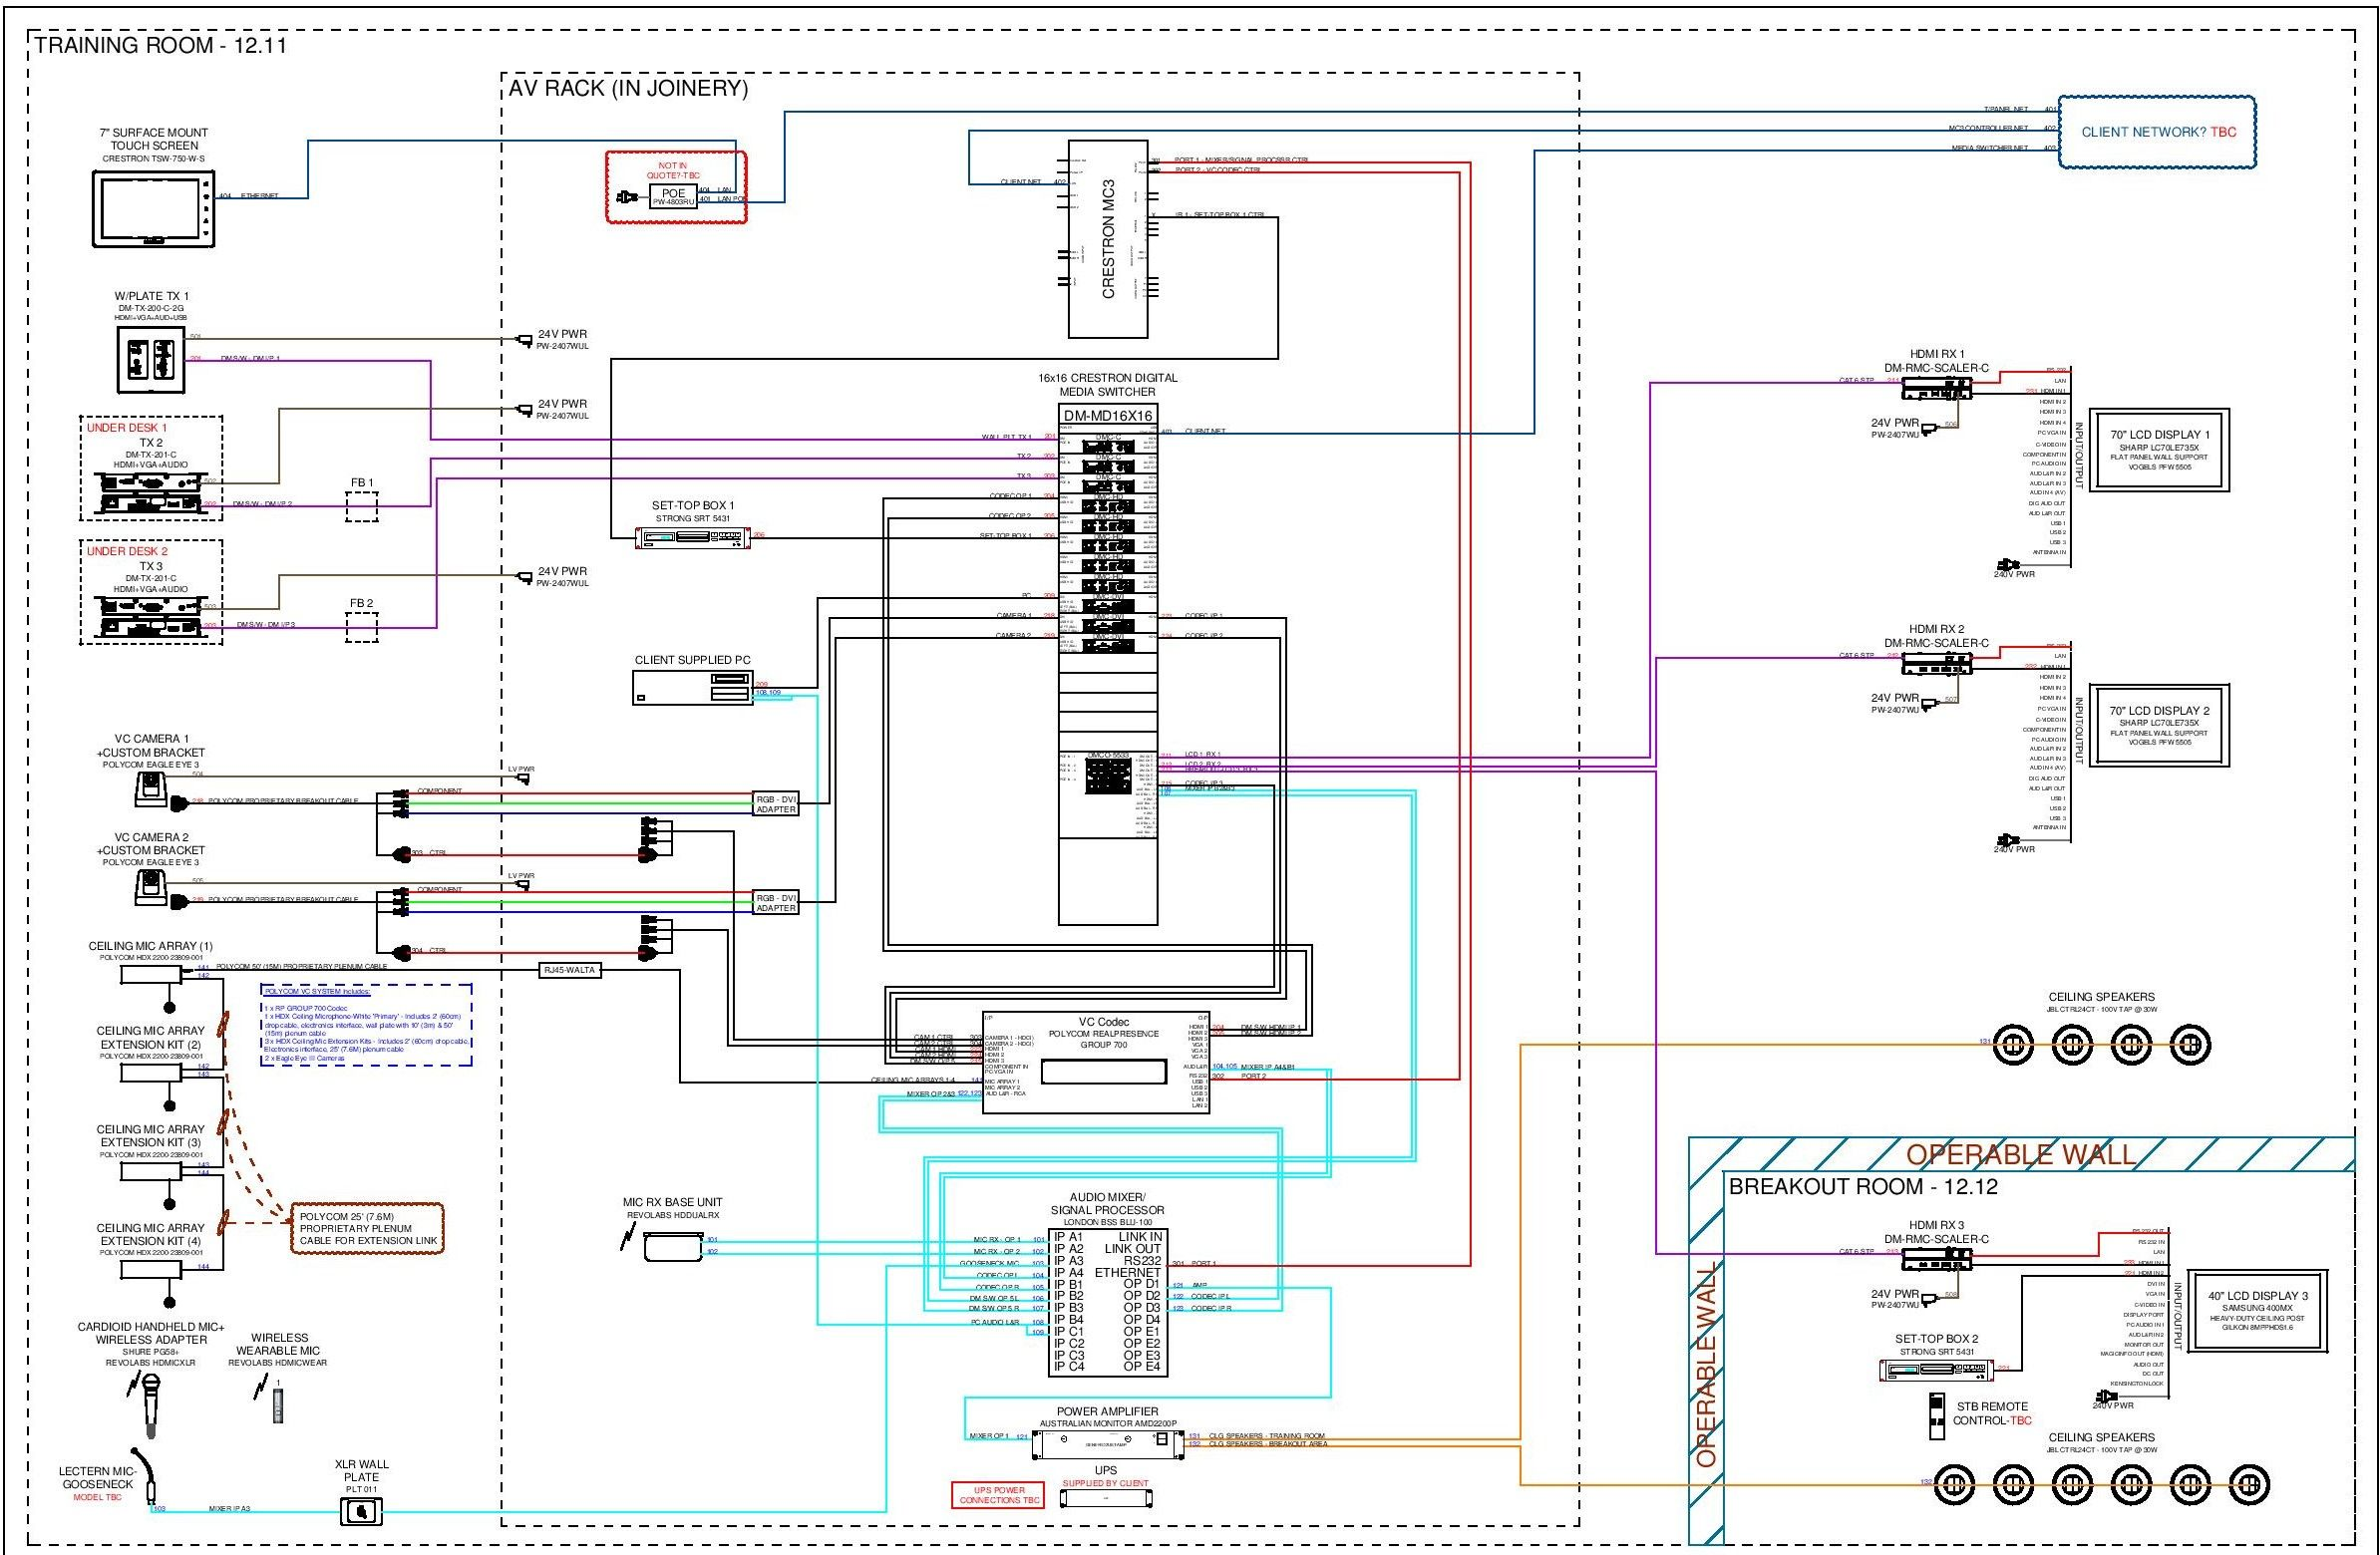 Media Wiring Diagram | Wiring Diagram on